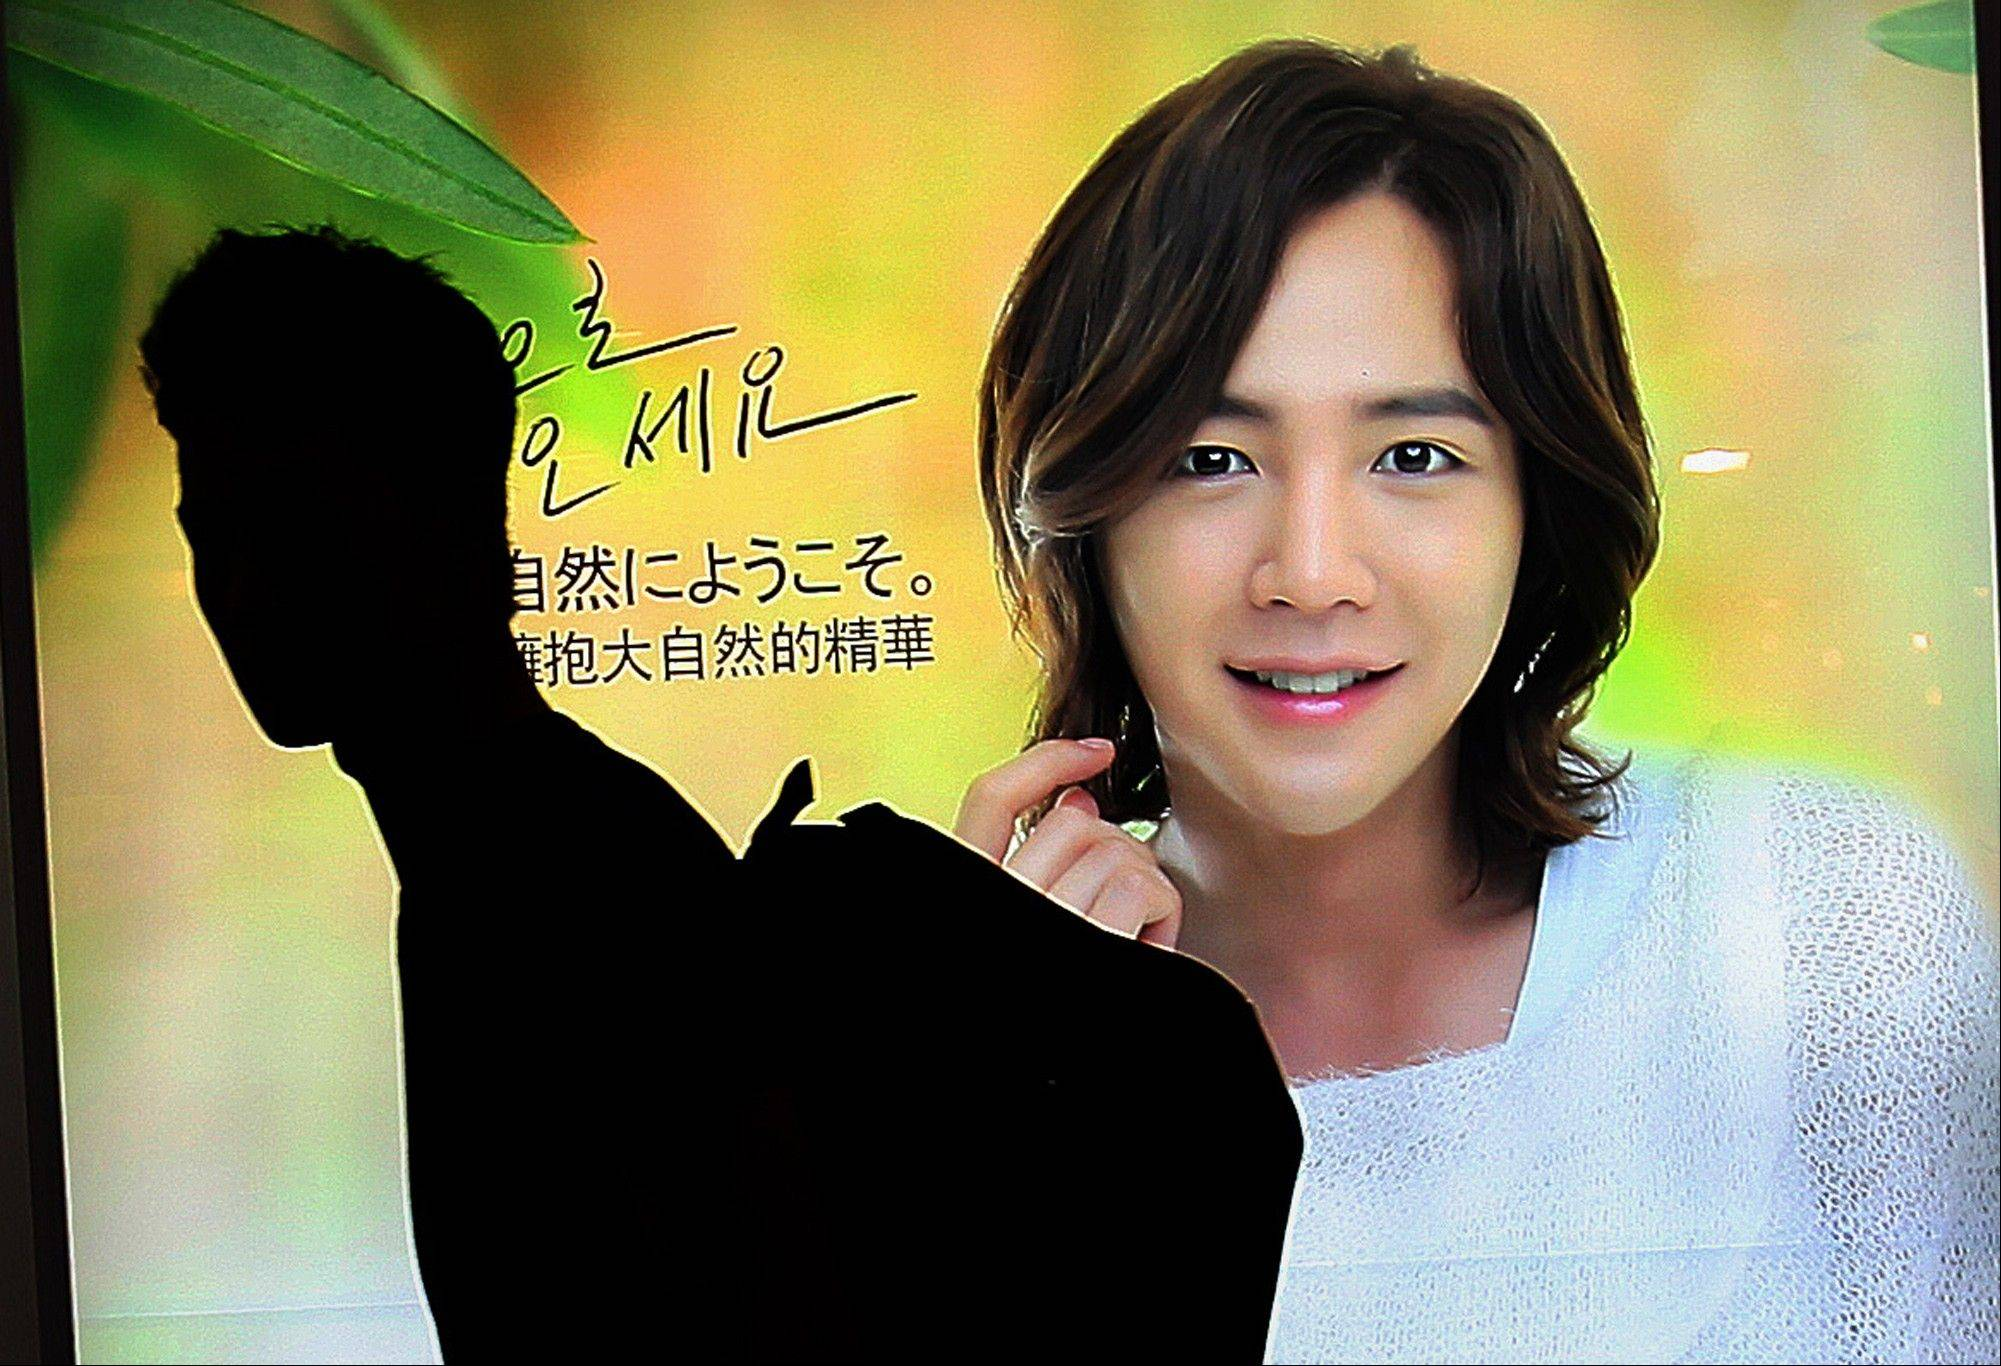 A man walks by an advertisement featuring Jang Keun-suk, a South Korean celebrity often given the title �flower man� by news media in Seoul, South Korea. The metamorphosis of South Korean men from macho to makeup over the last decade or so can be partly explained by fierce competition for jobs, advancement and romance in a society where, as a popular catchphrase puts it, �appearance is power.�